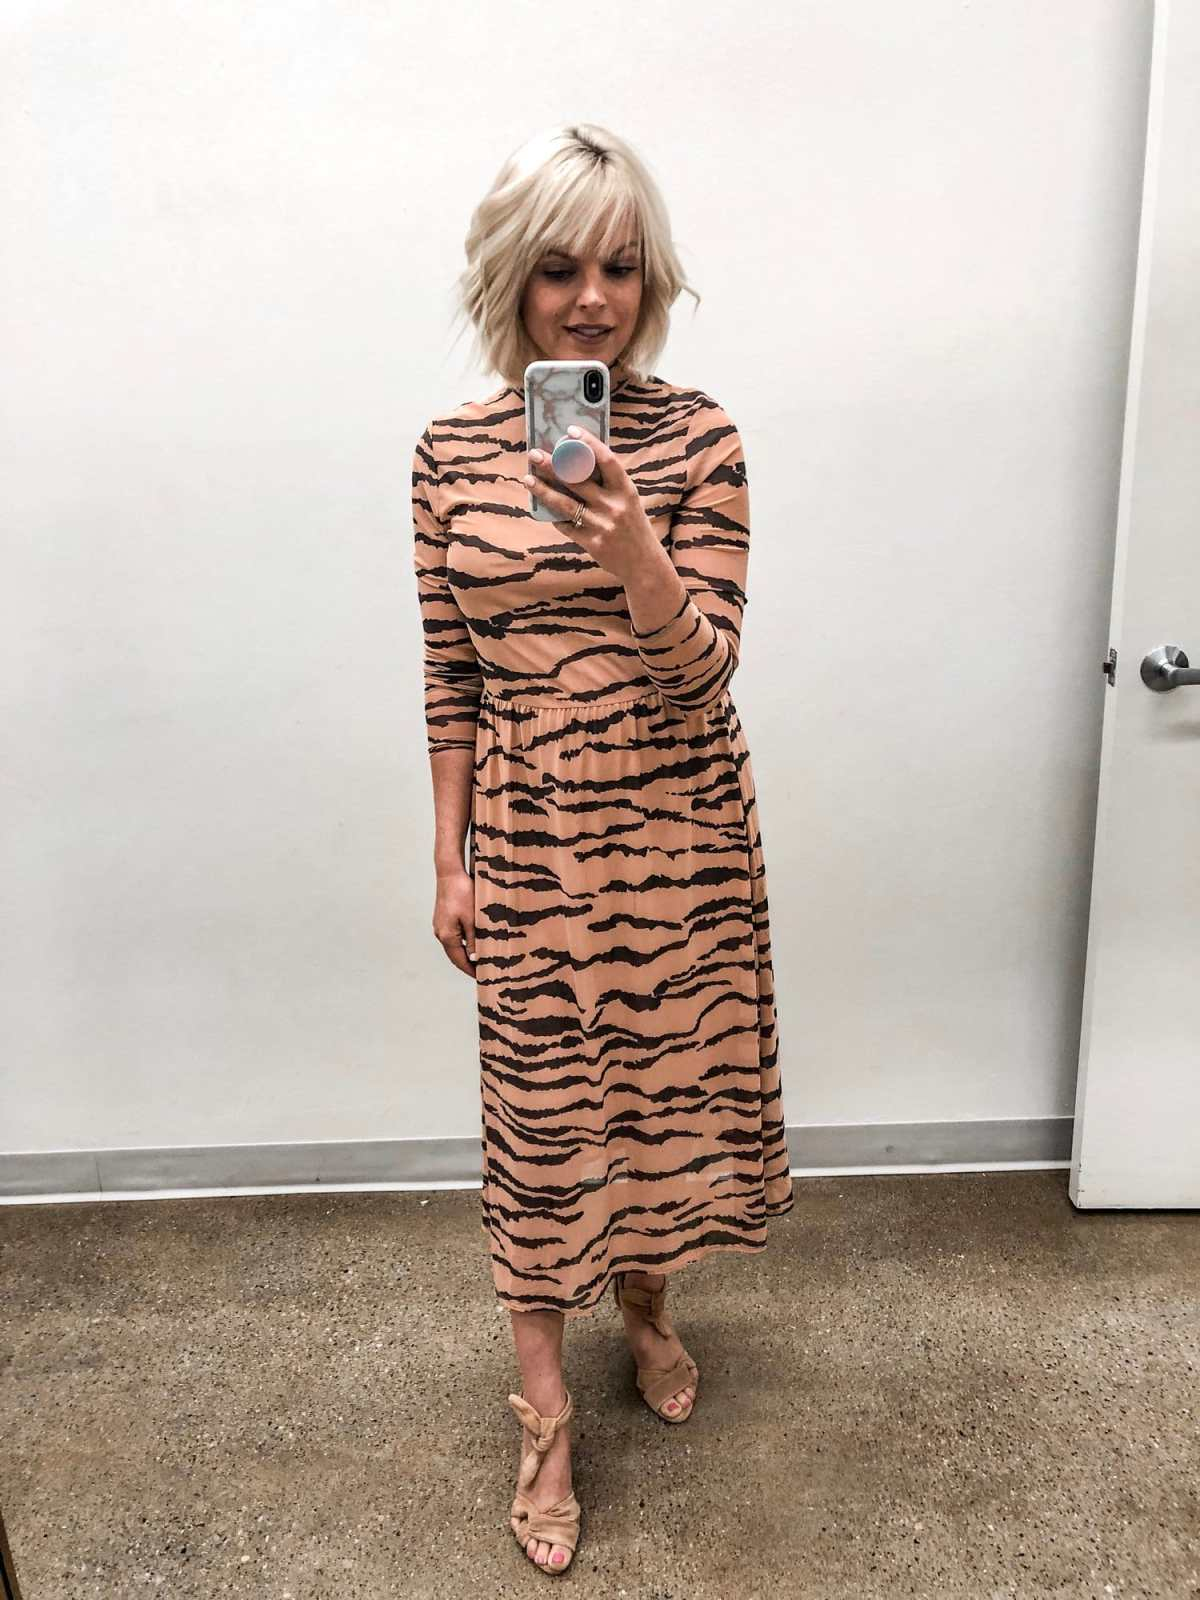 Top of the World OOTD My Fav Johanna Grunge in tiger print dress